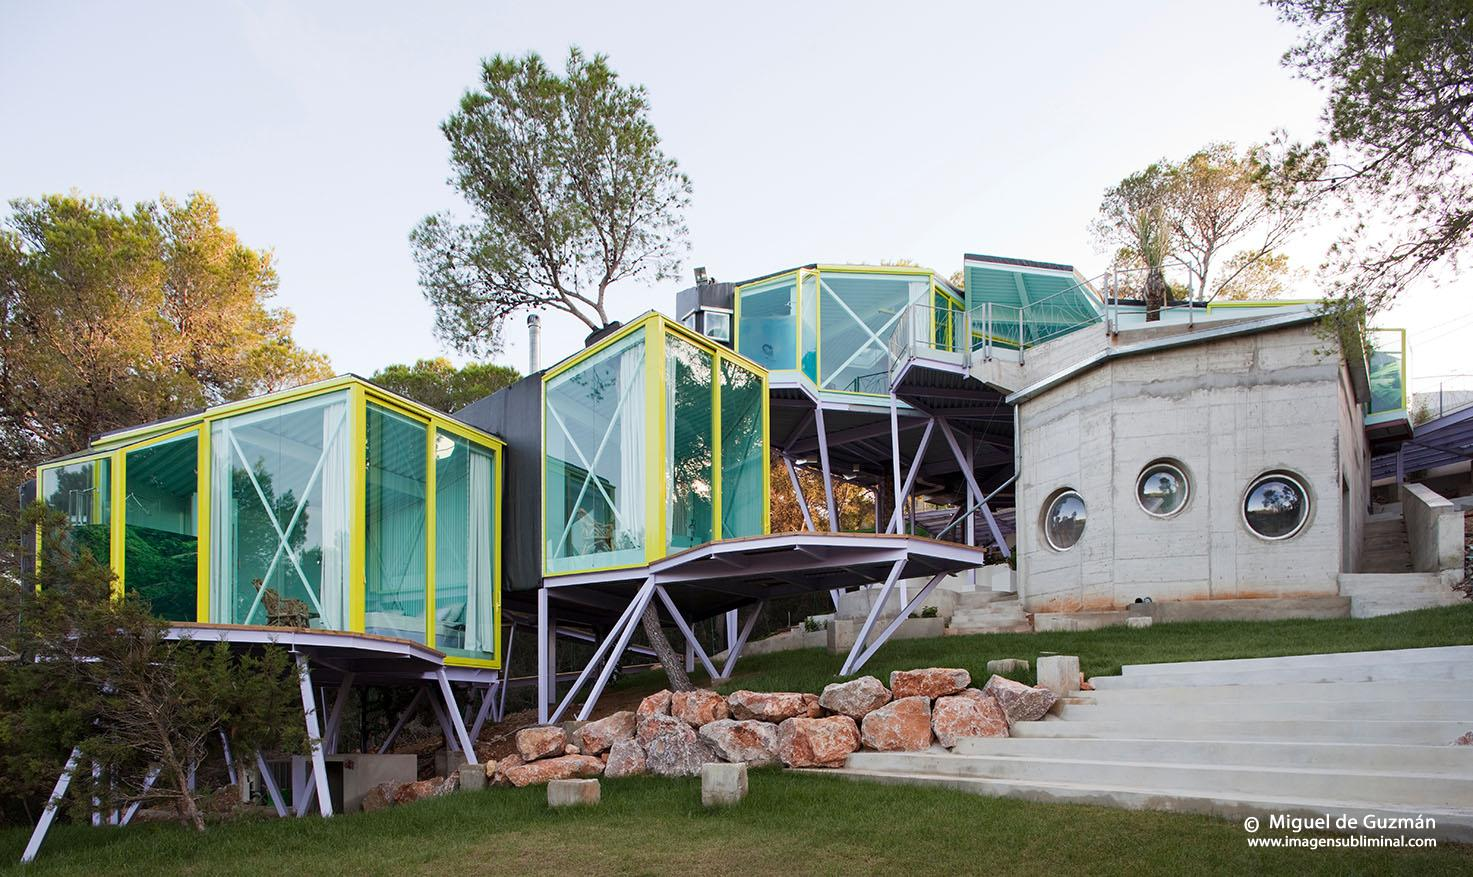 The Never Never Land House in Ibiza